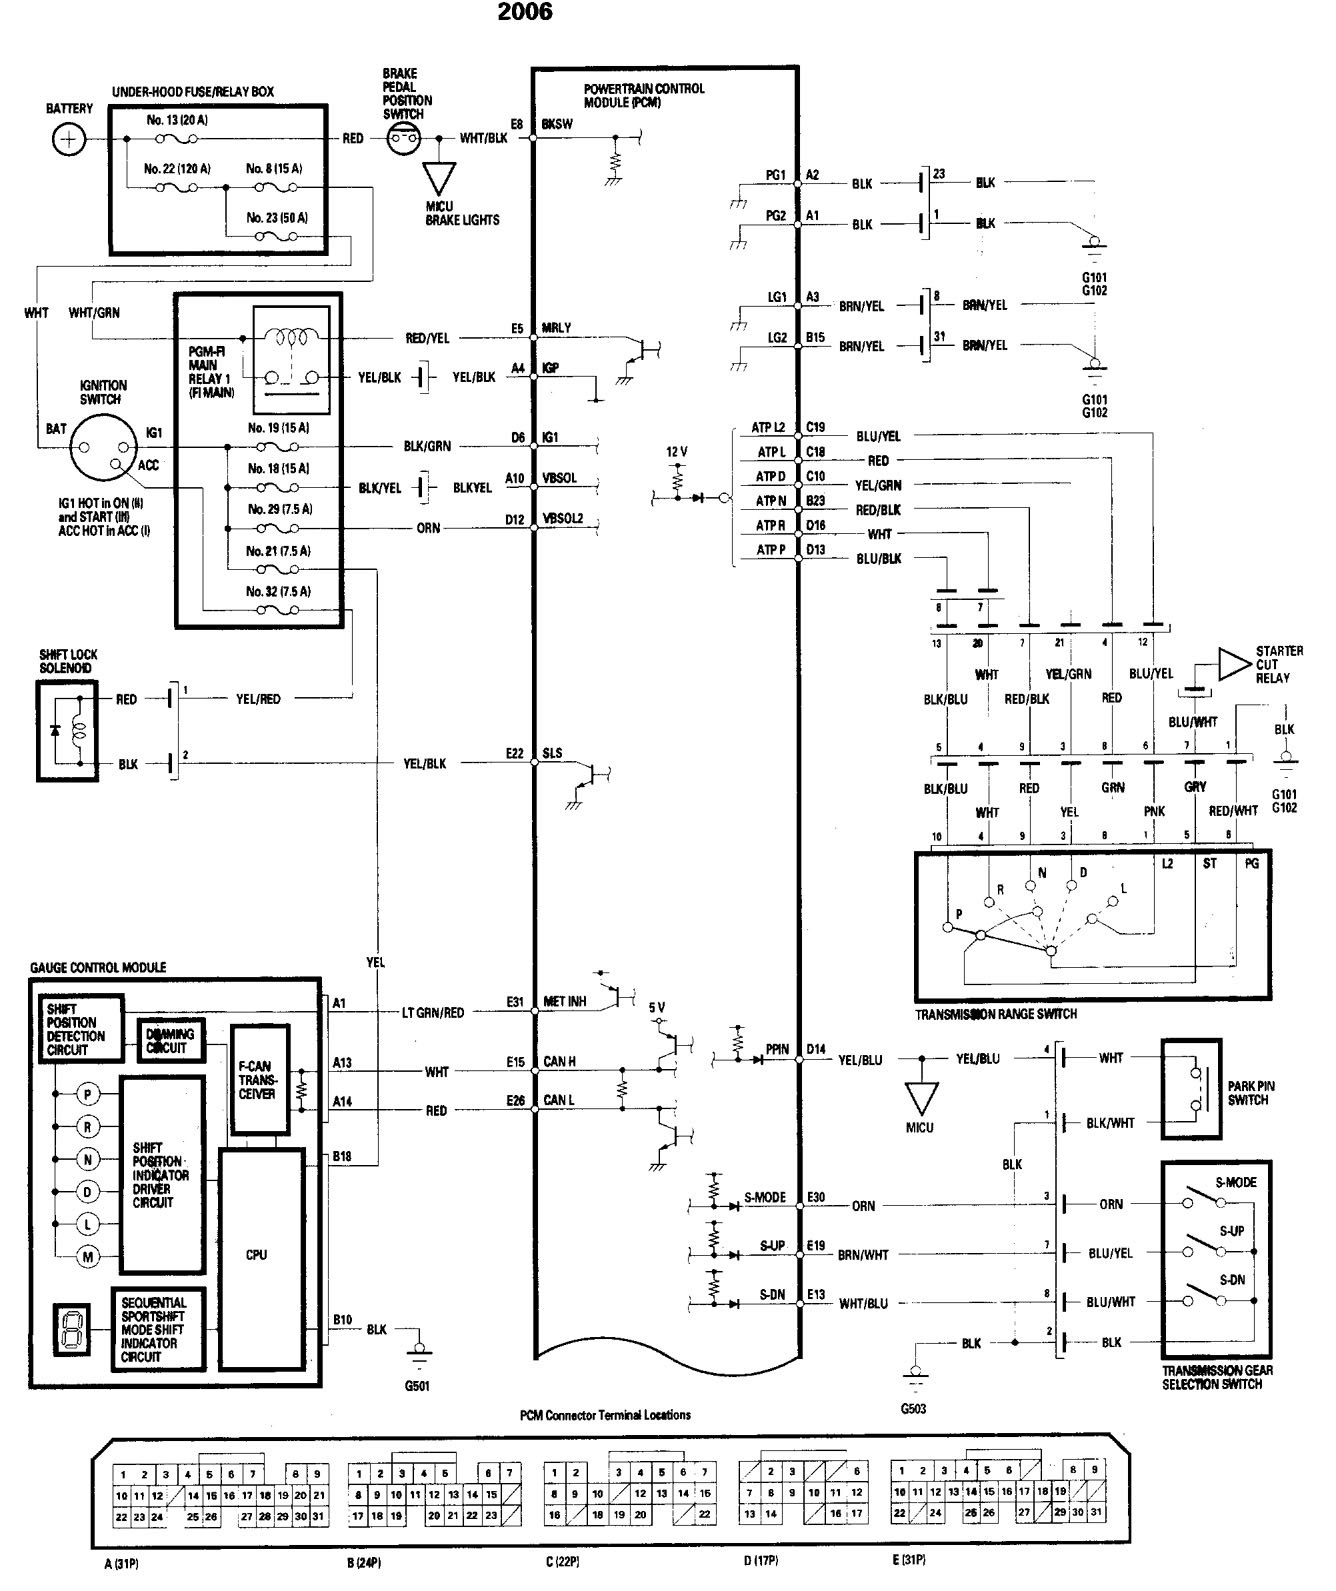 Acura Tl 2006 Wiring Diagrams Transmission Controls Carknowledge Diagram Part 1